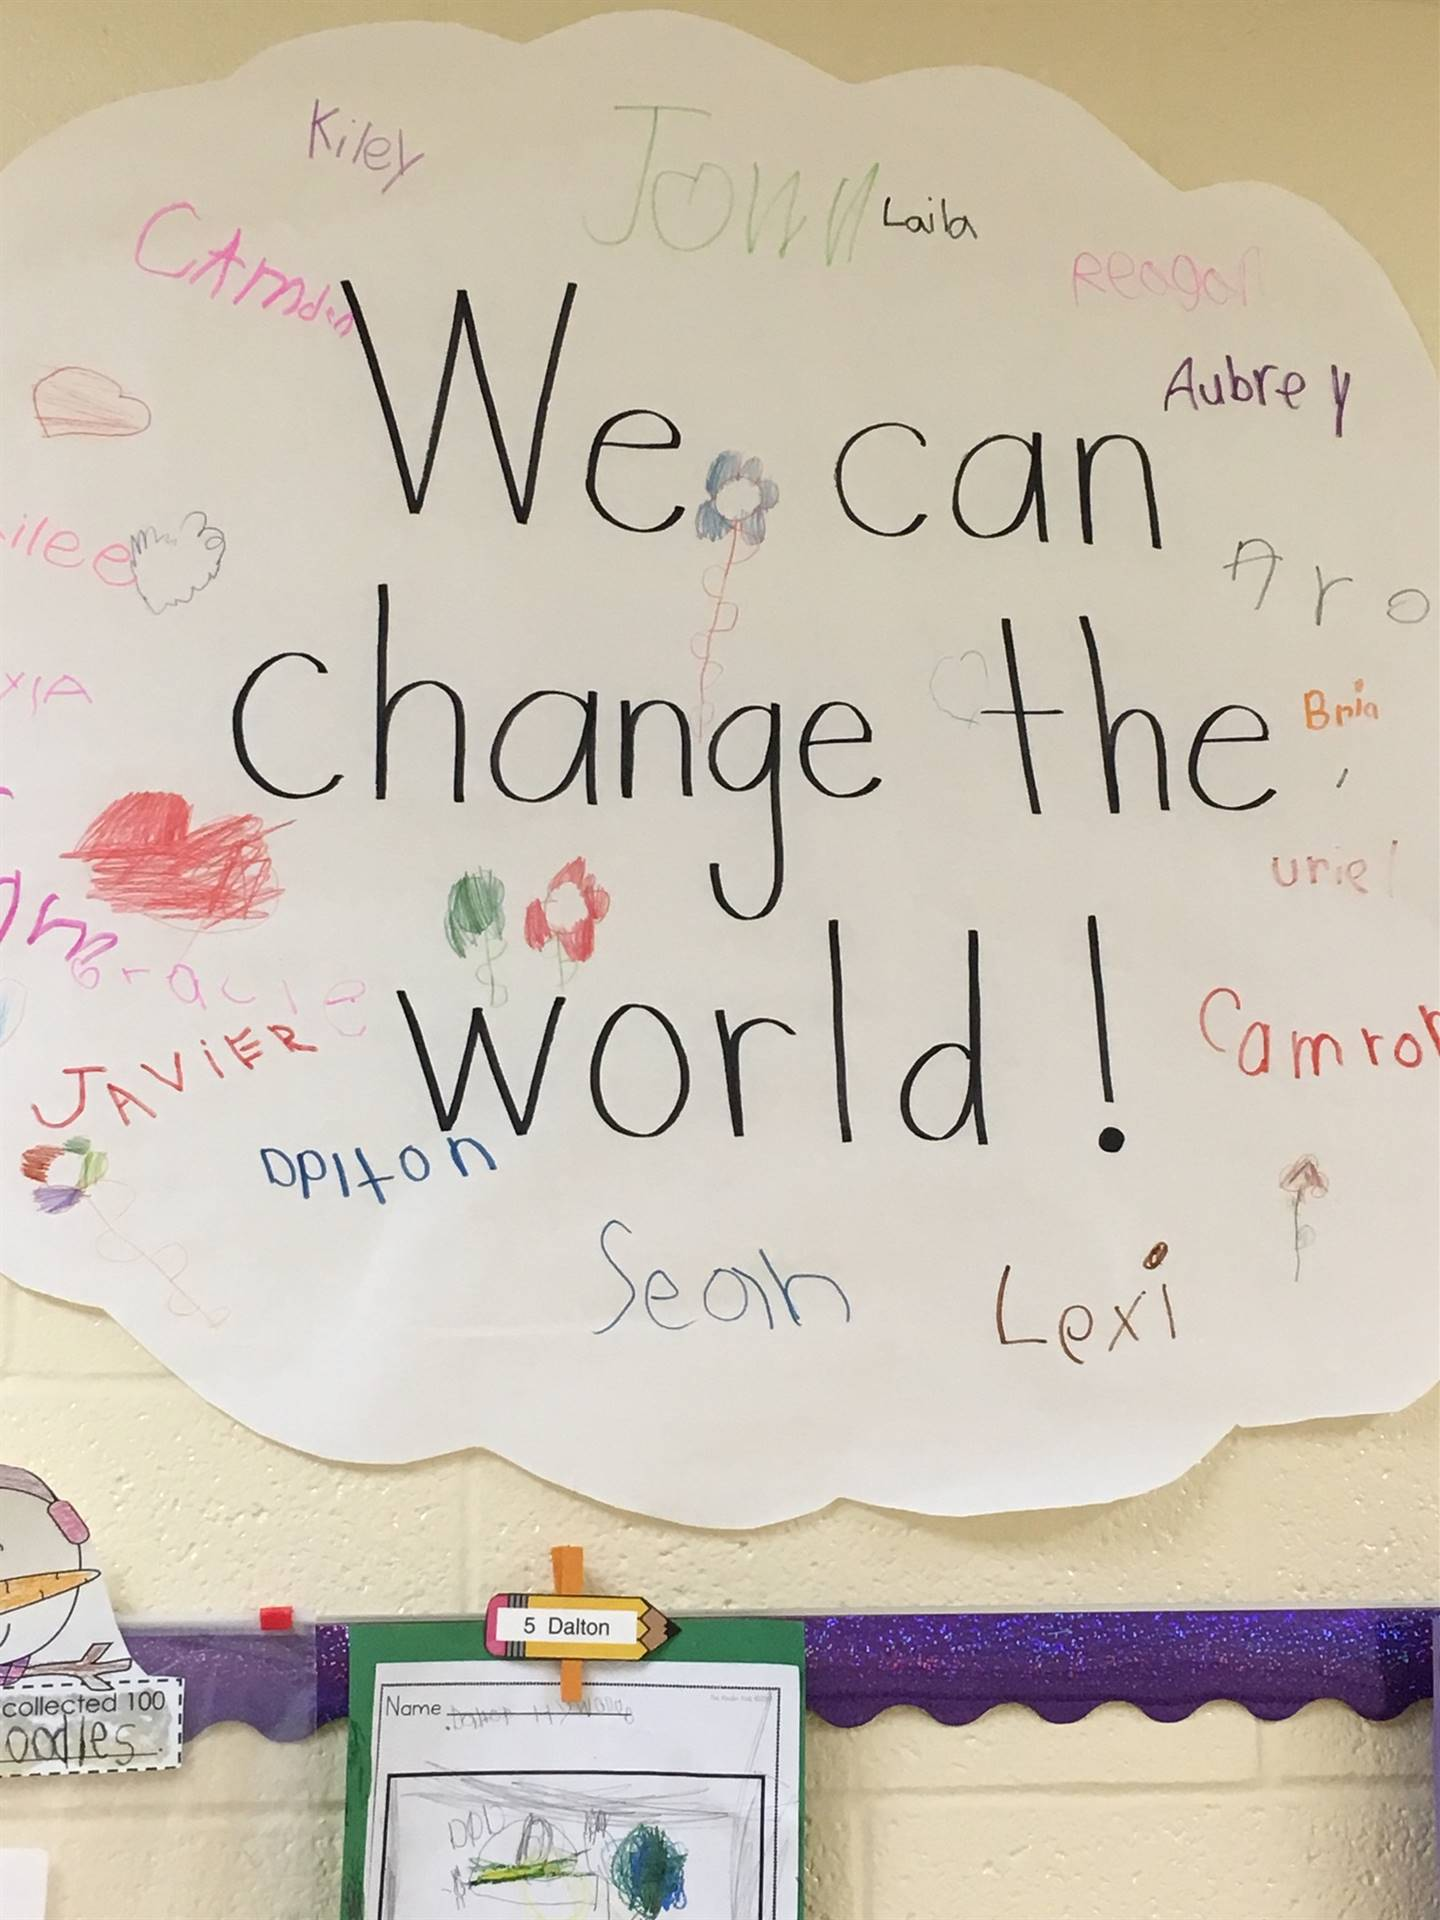 Look how we can change the world.  Inspired by Martin Luther King, Jr.